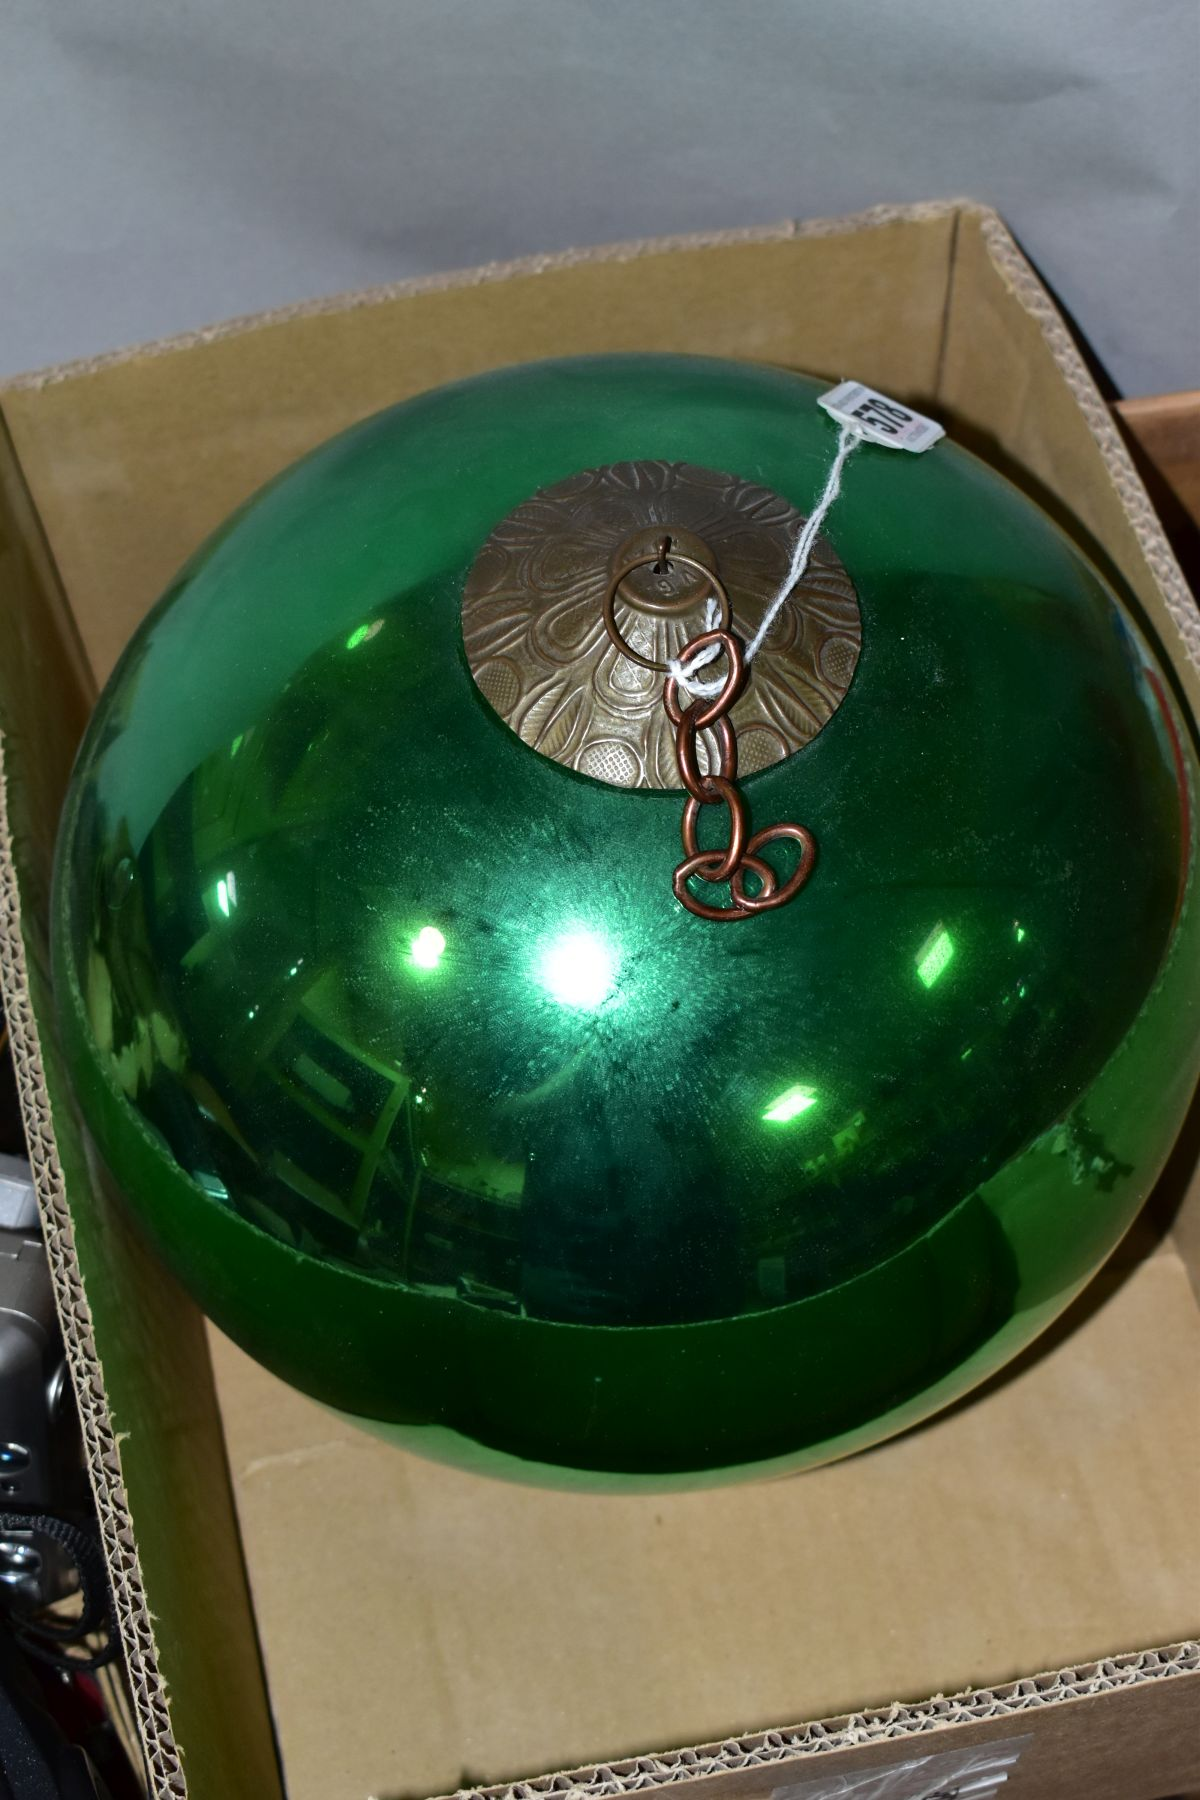 A LATE 19TH/EARLY 20TH CENTURY METALLIC GREEN GLASS WITCH'S BALL with metal mount and short length - Image 2 of 3